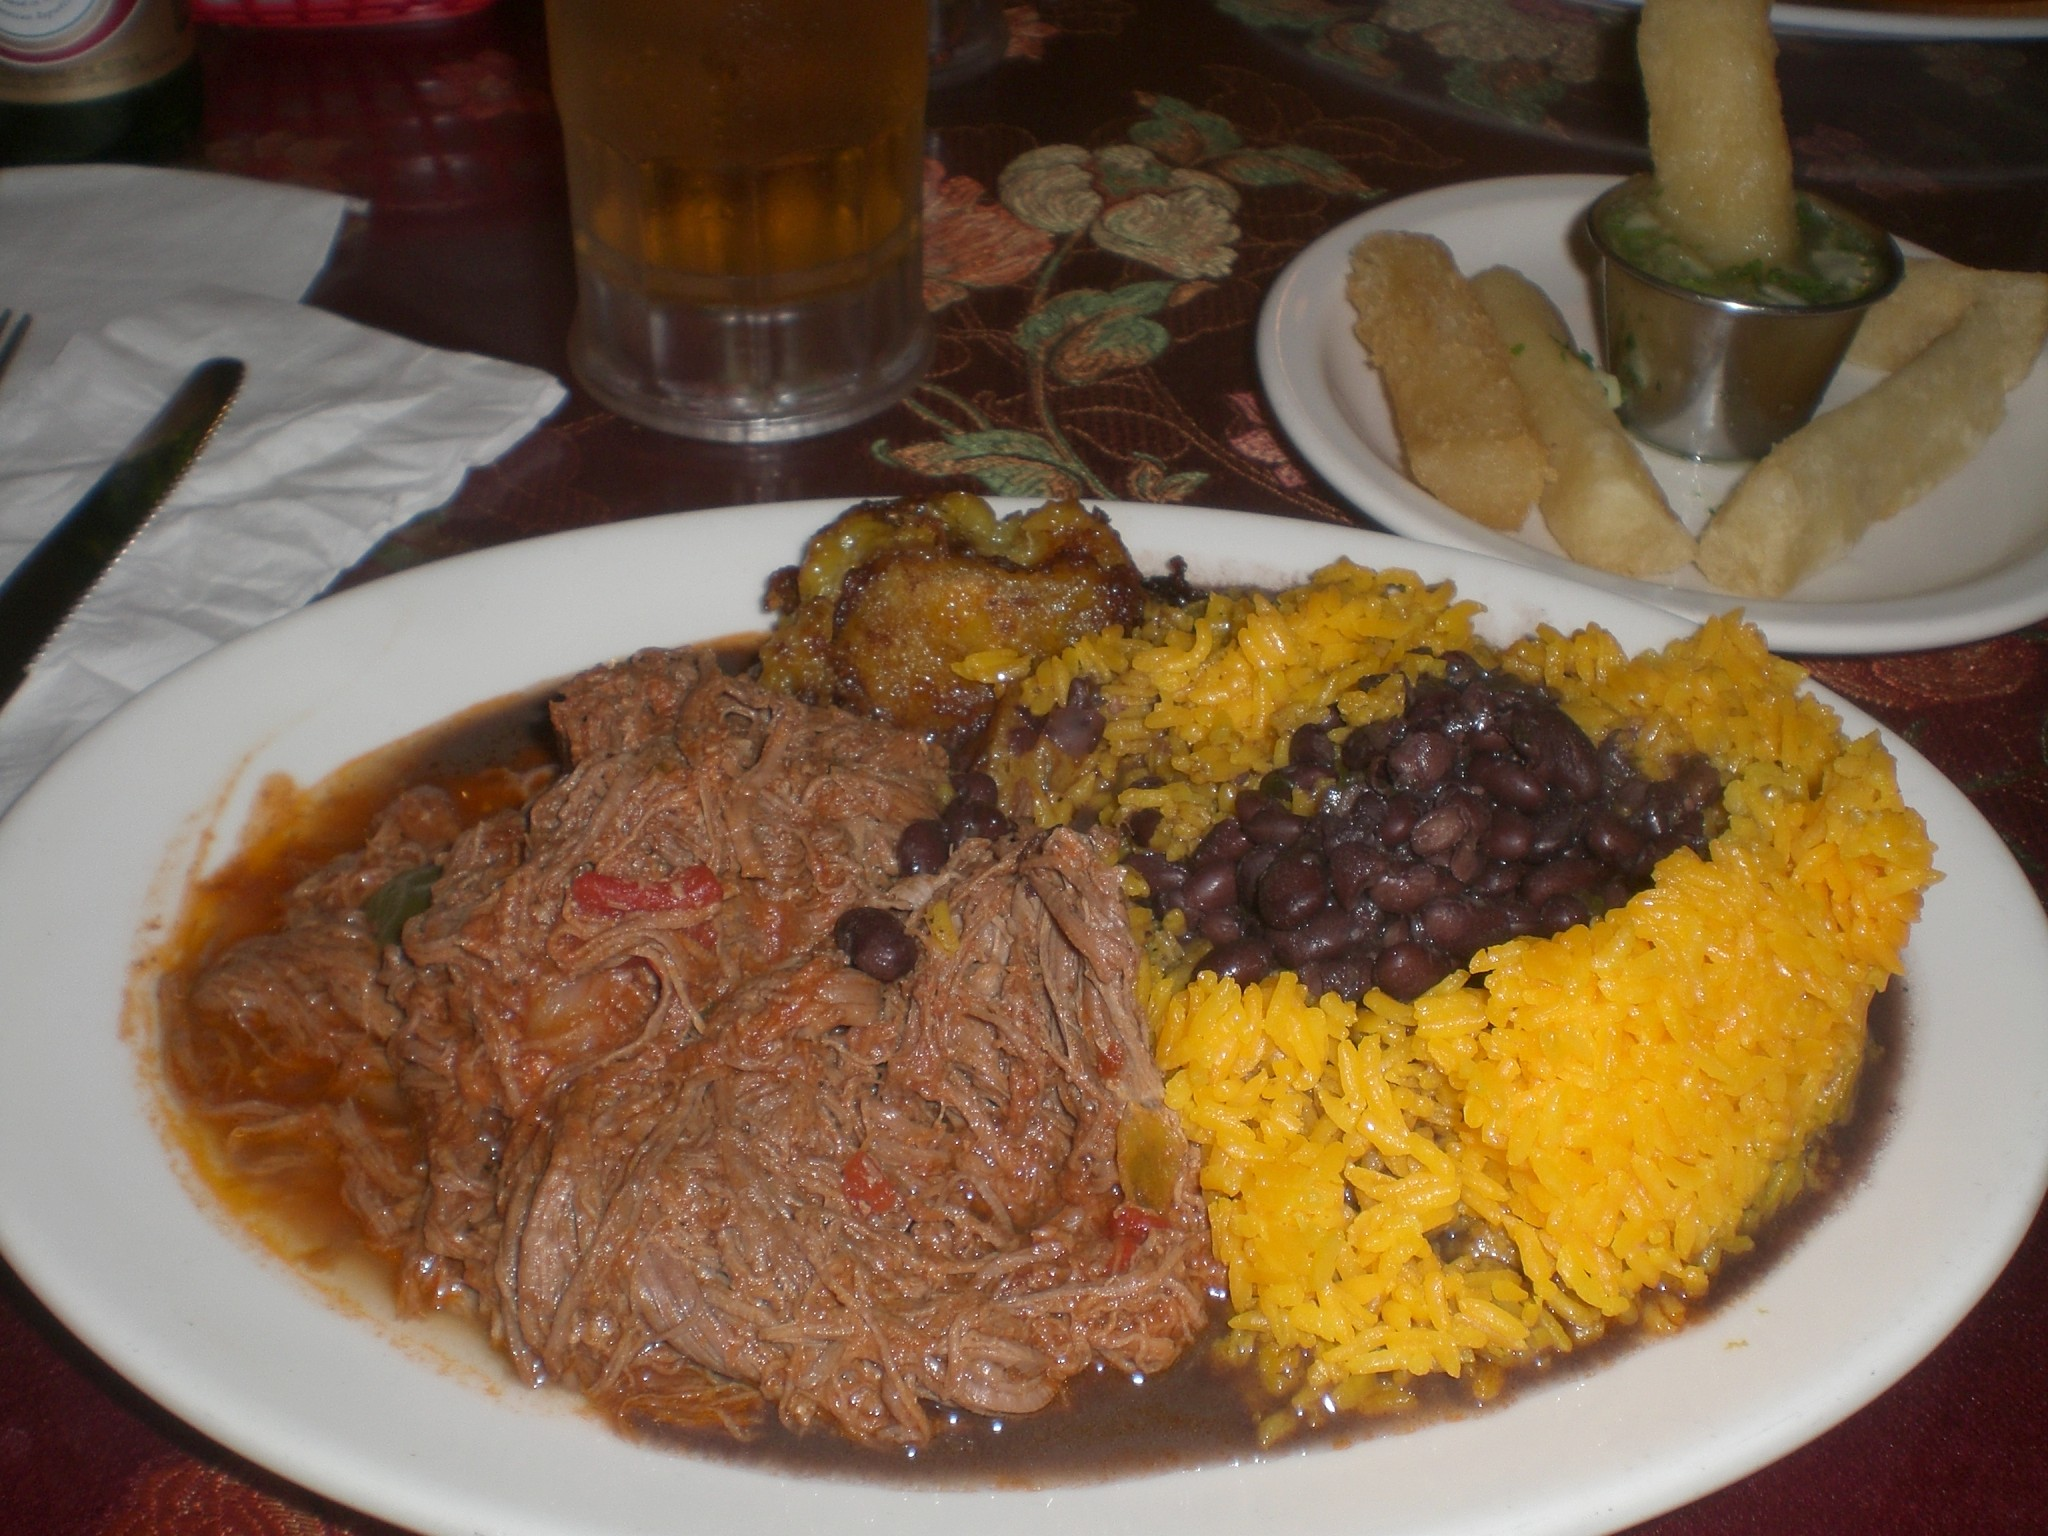 Depiction of Ropa vieja